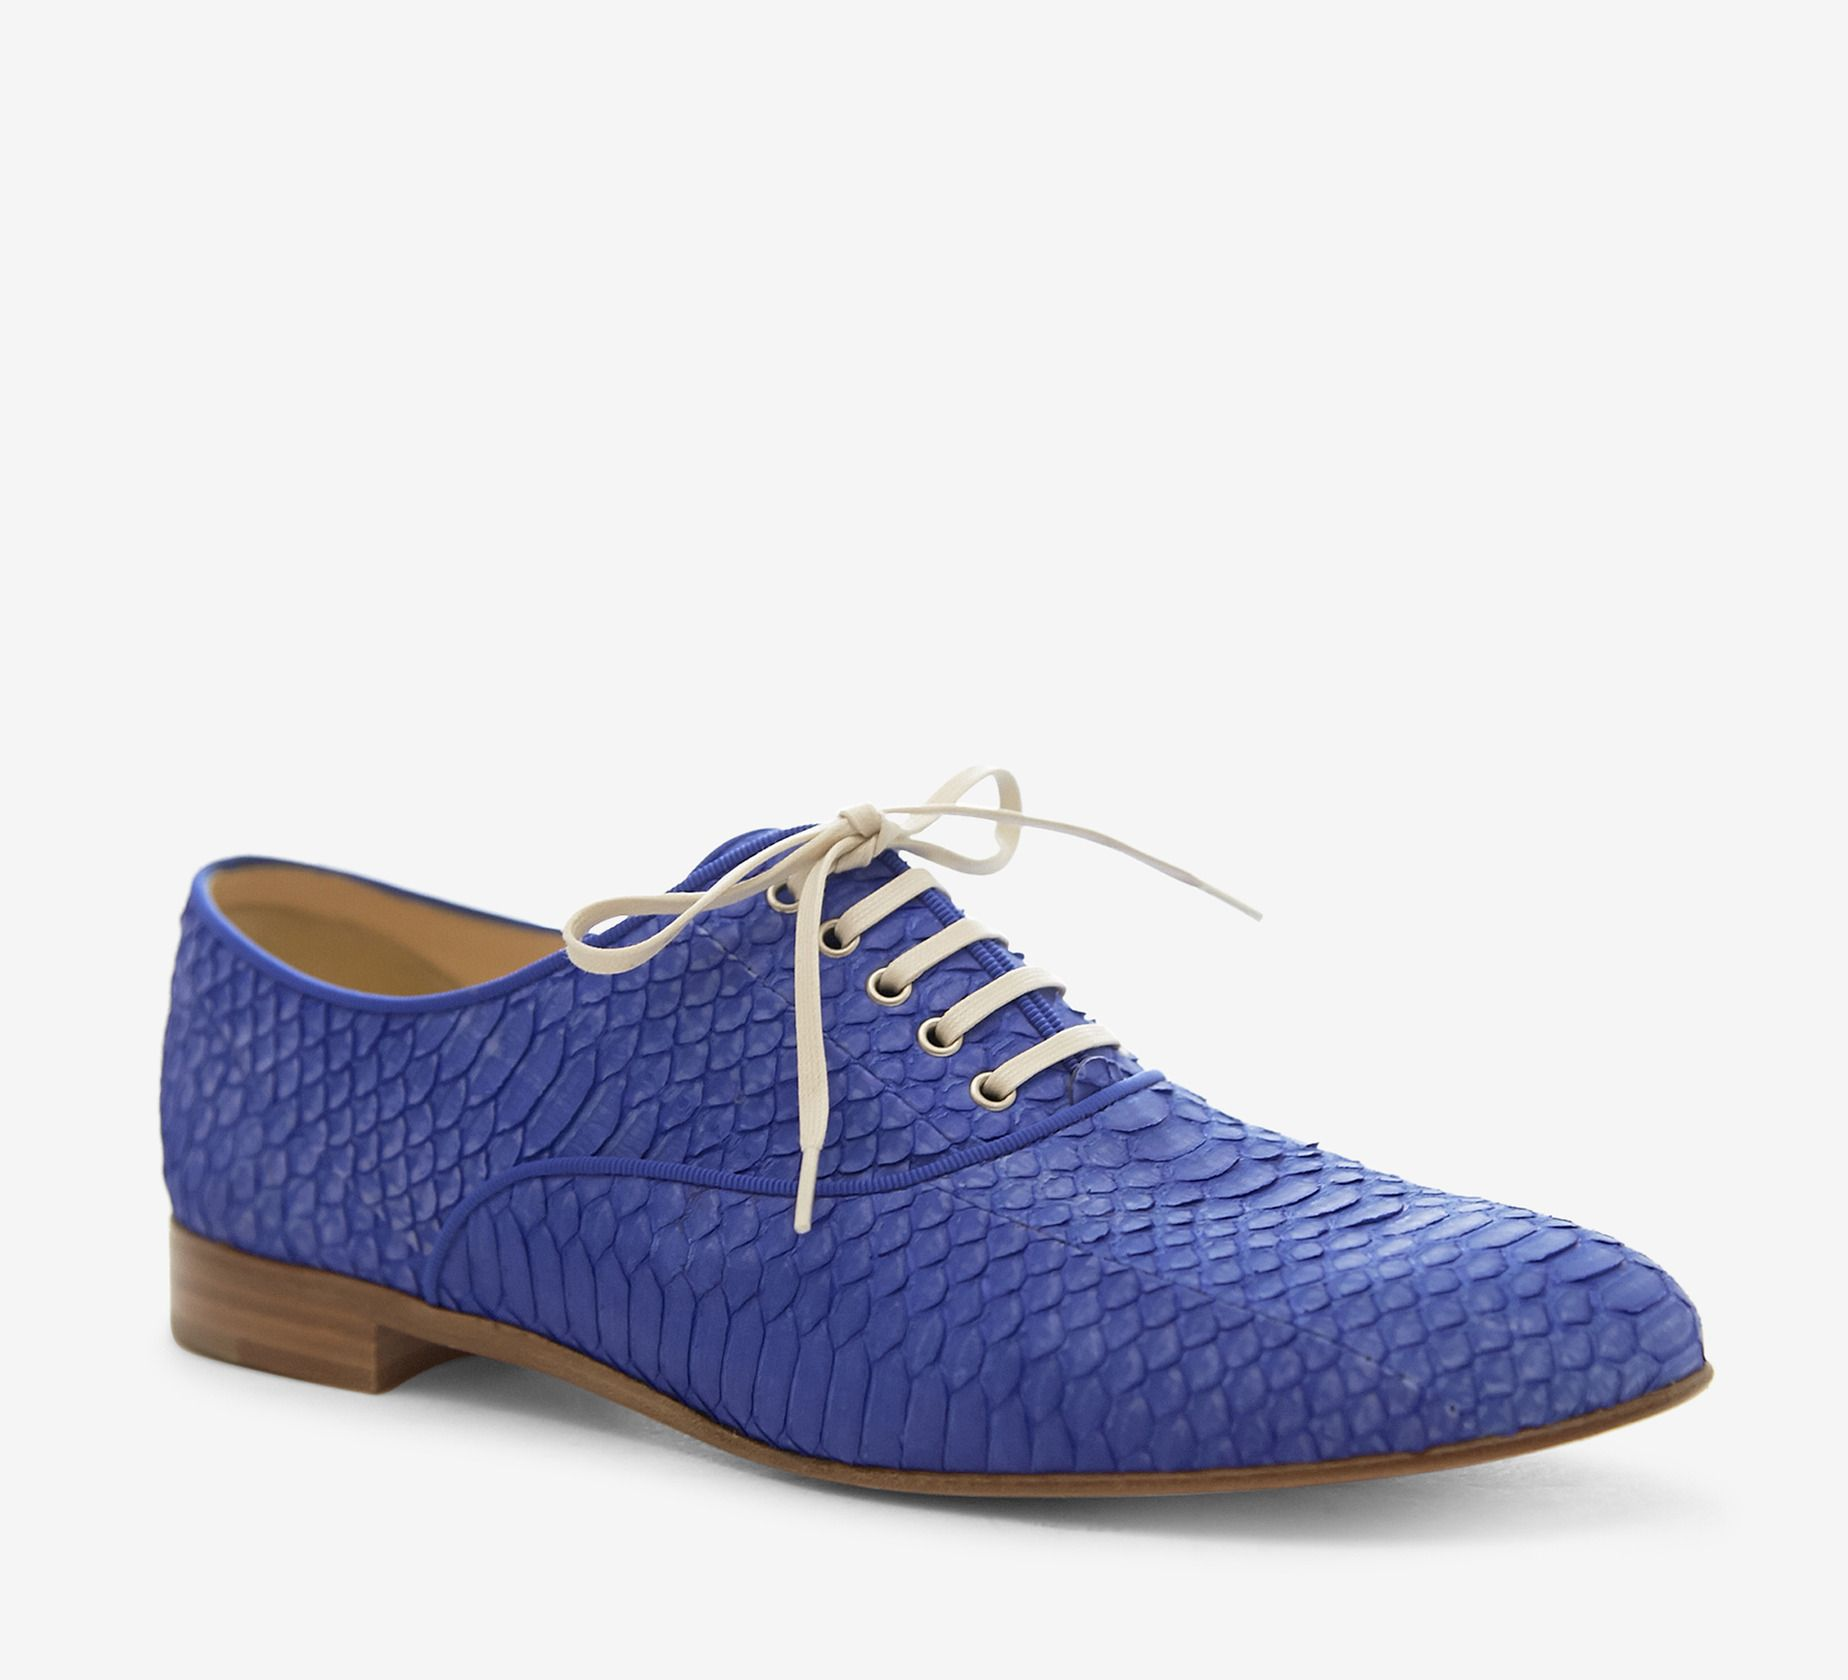 super popular 0e956 d6f92 Christian Louboutin Royal Blue And Brown Loafer | Shoes ...